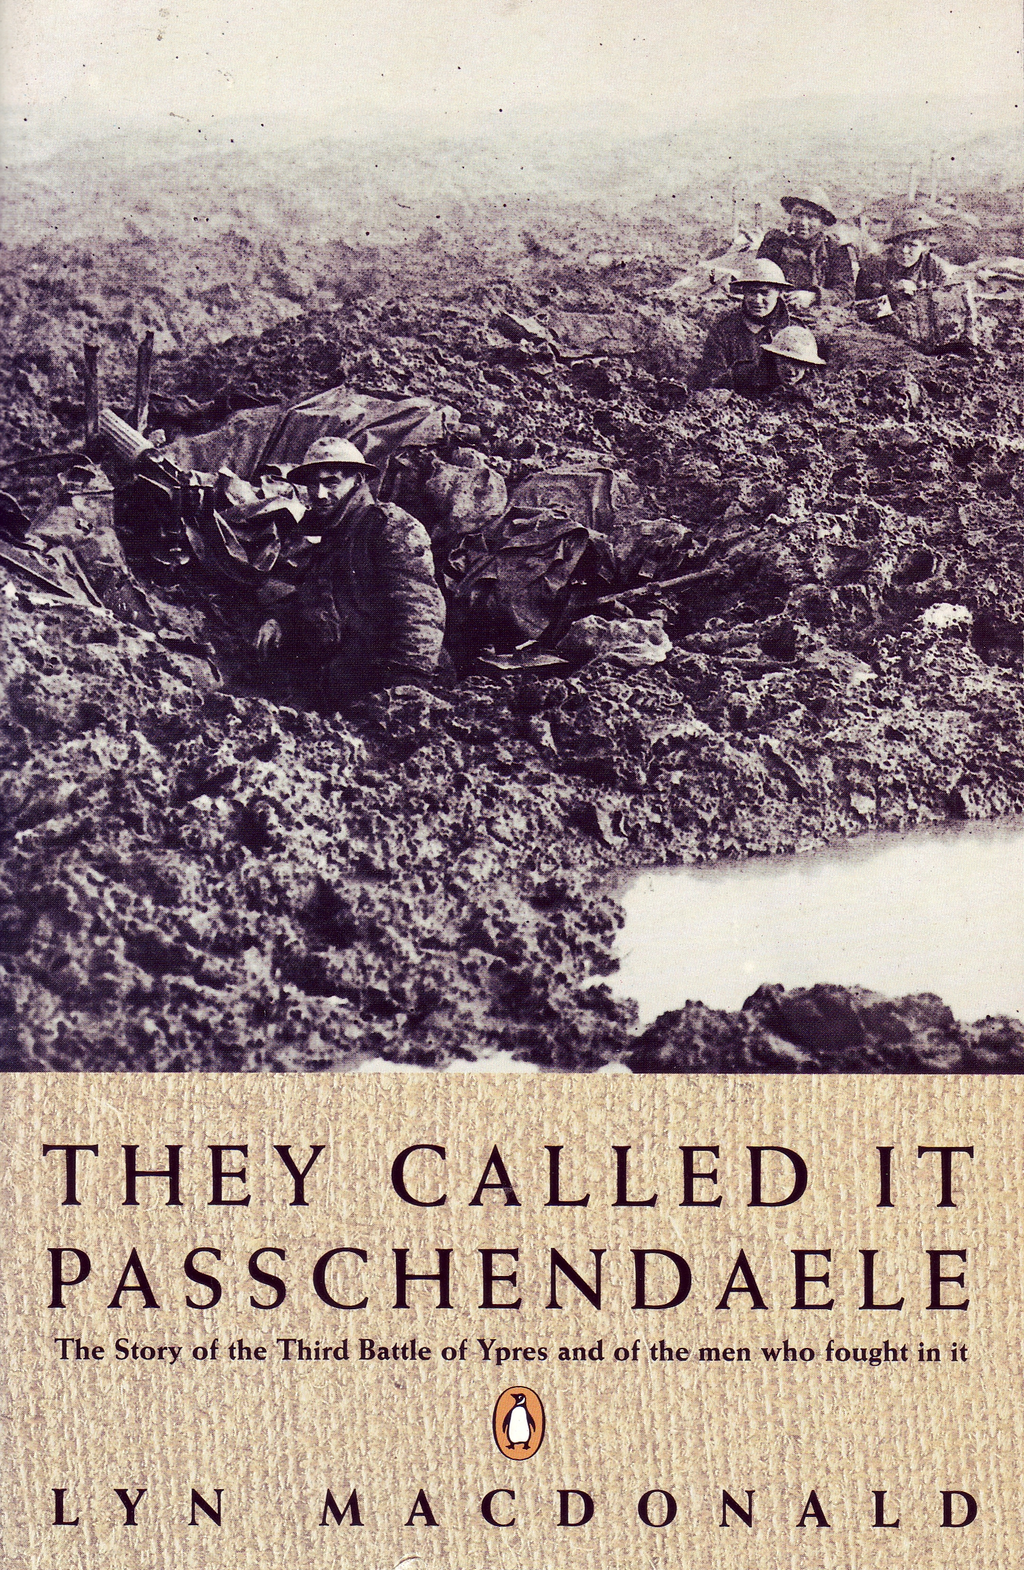 They Called it Passchendaele The Story of the Battle of Ypres and of the Men Who Fought in it